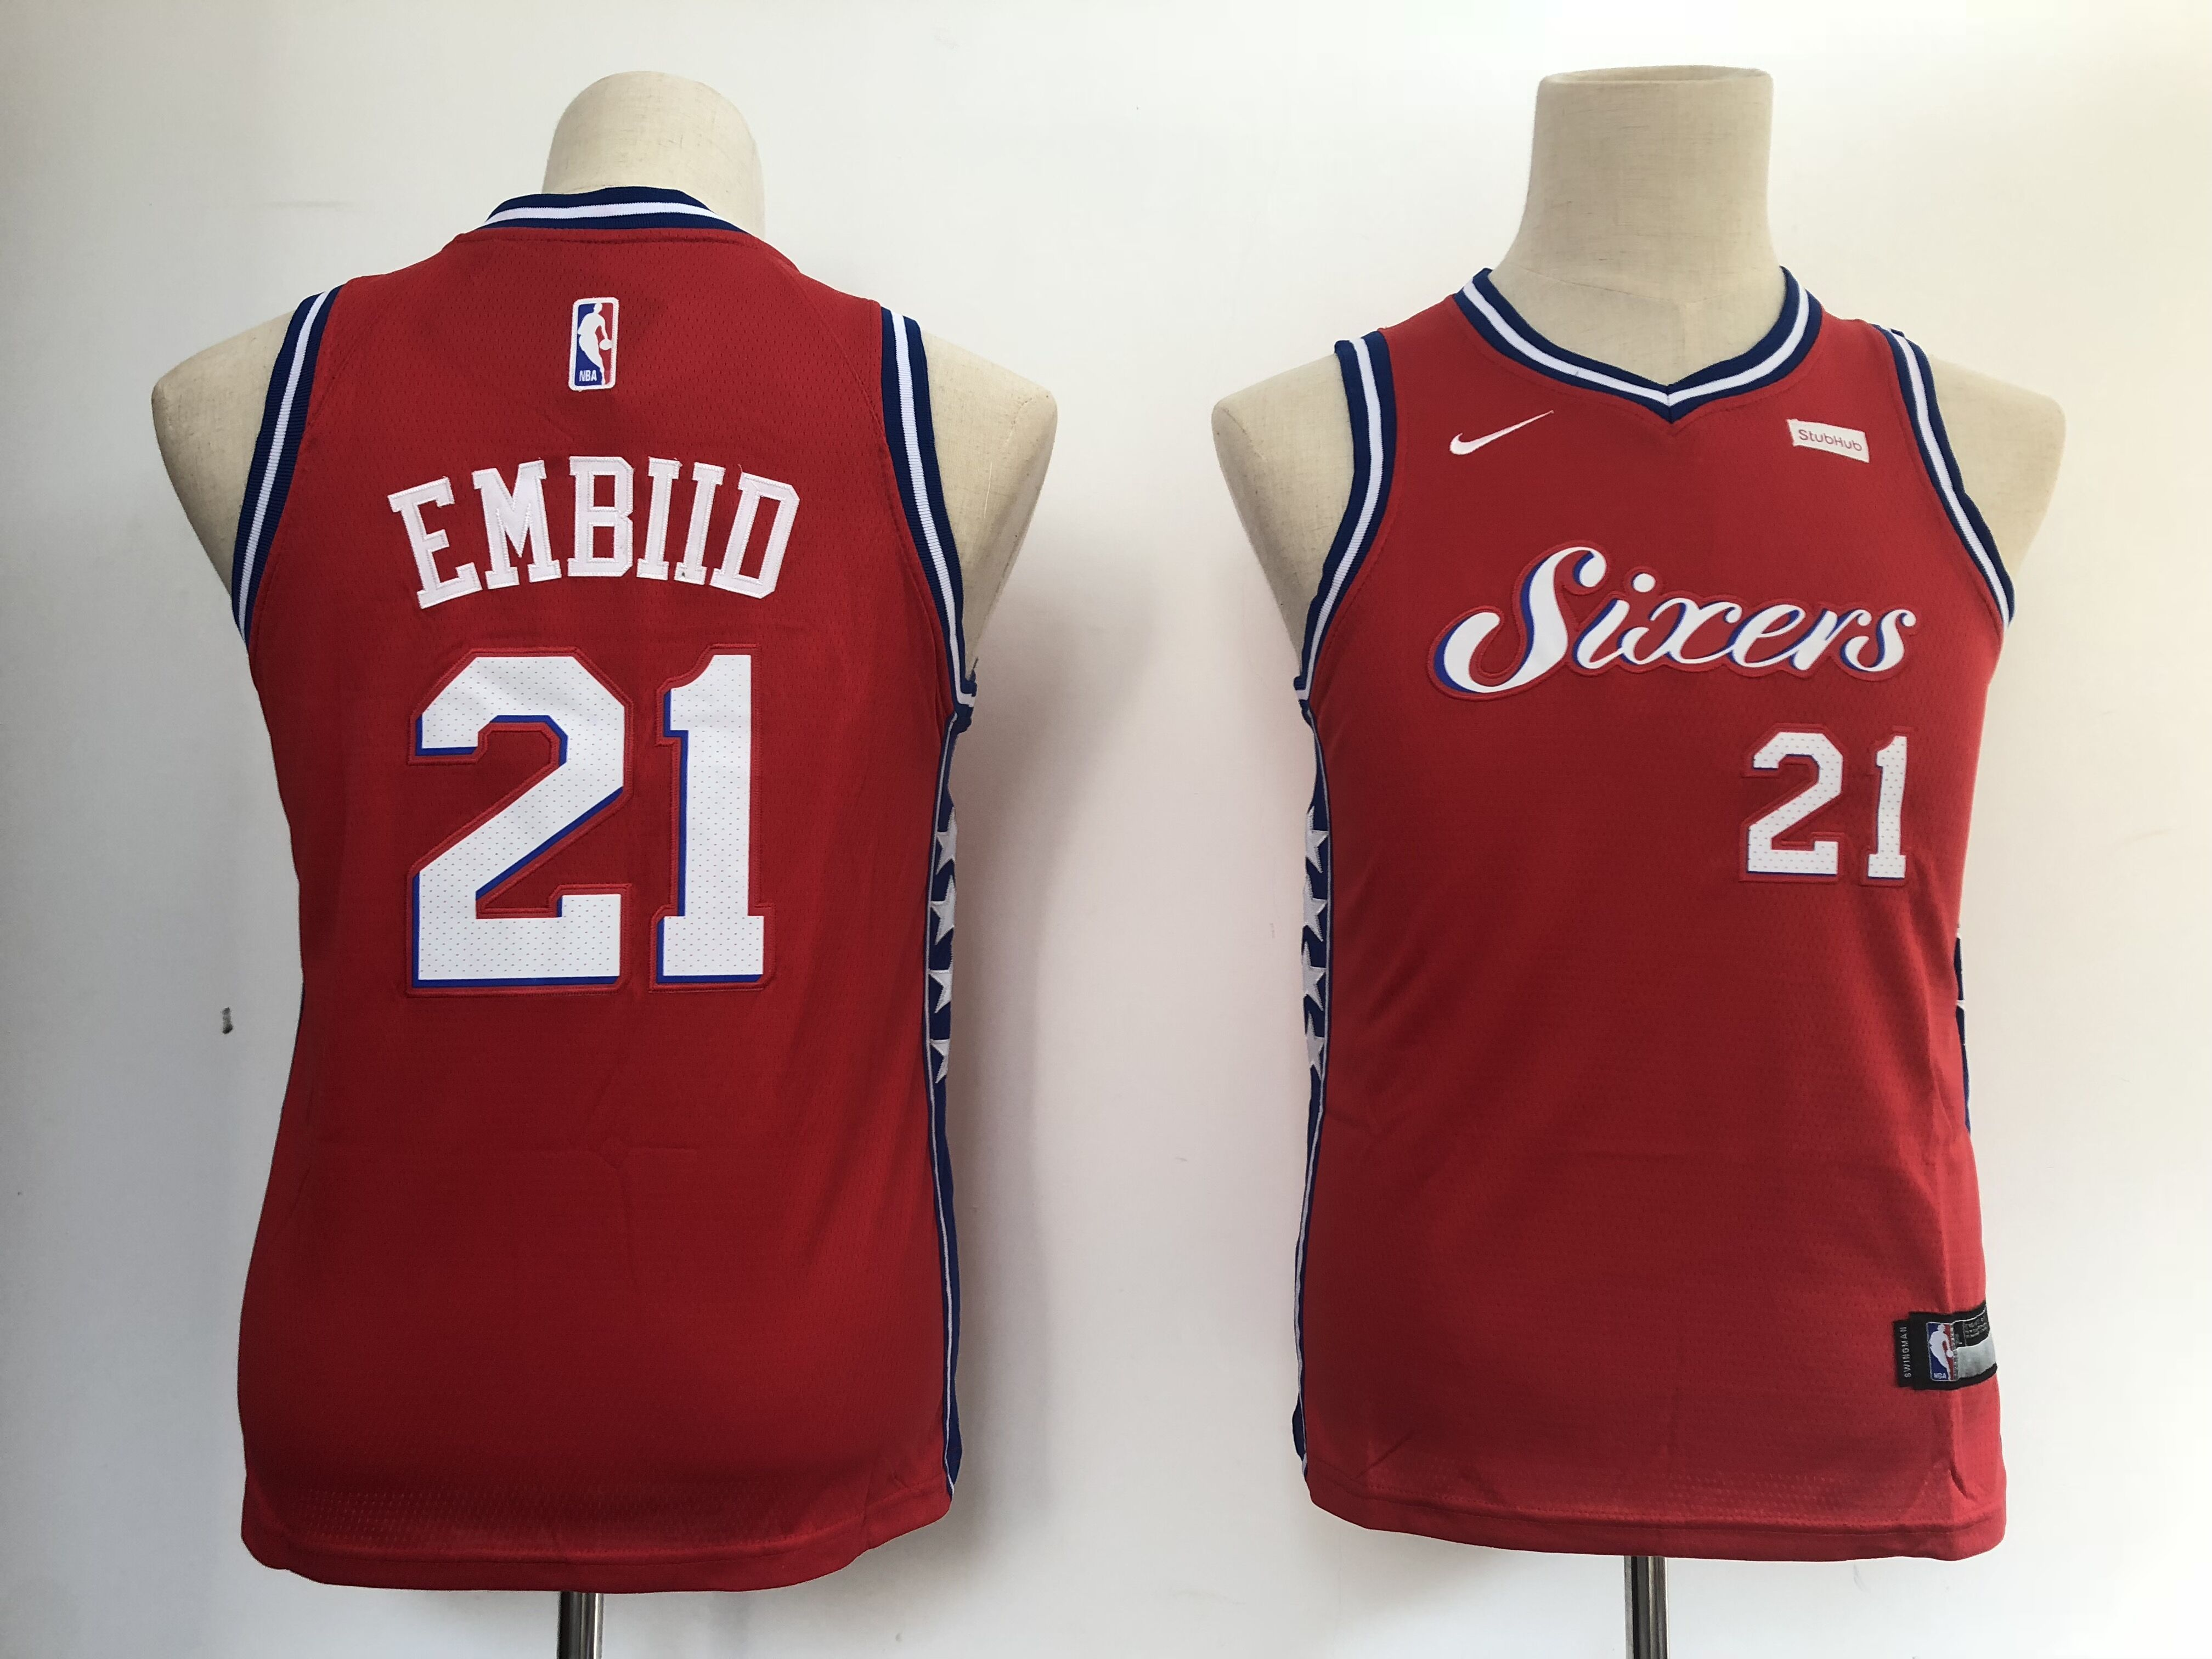 Youth Philadelphia 76ers 21 Embiid Red Nike NBA Jerseys